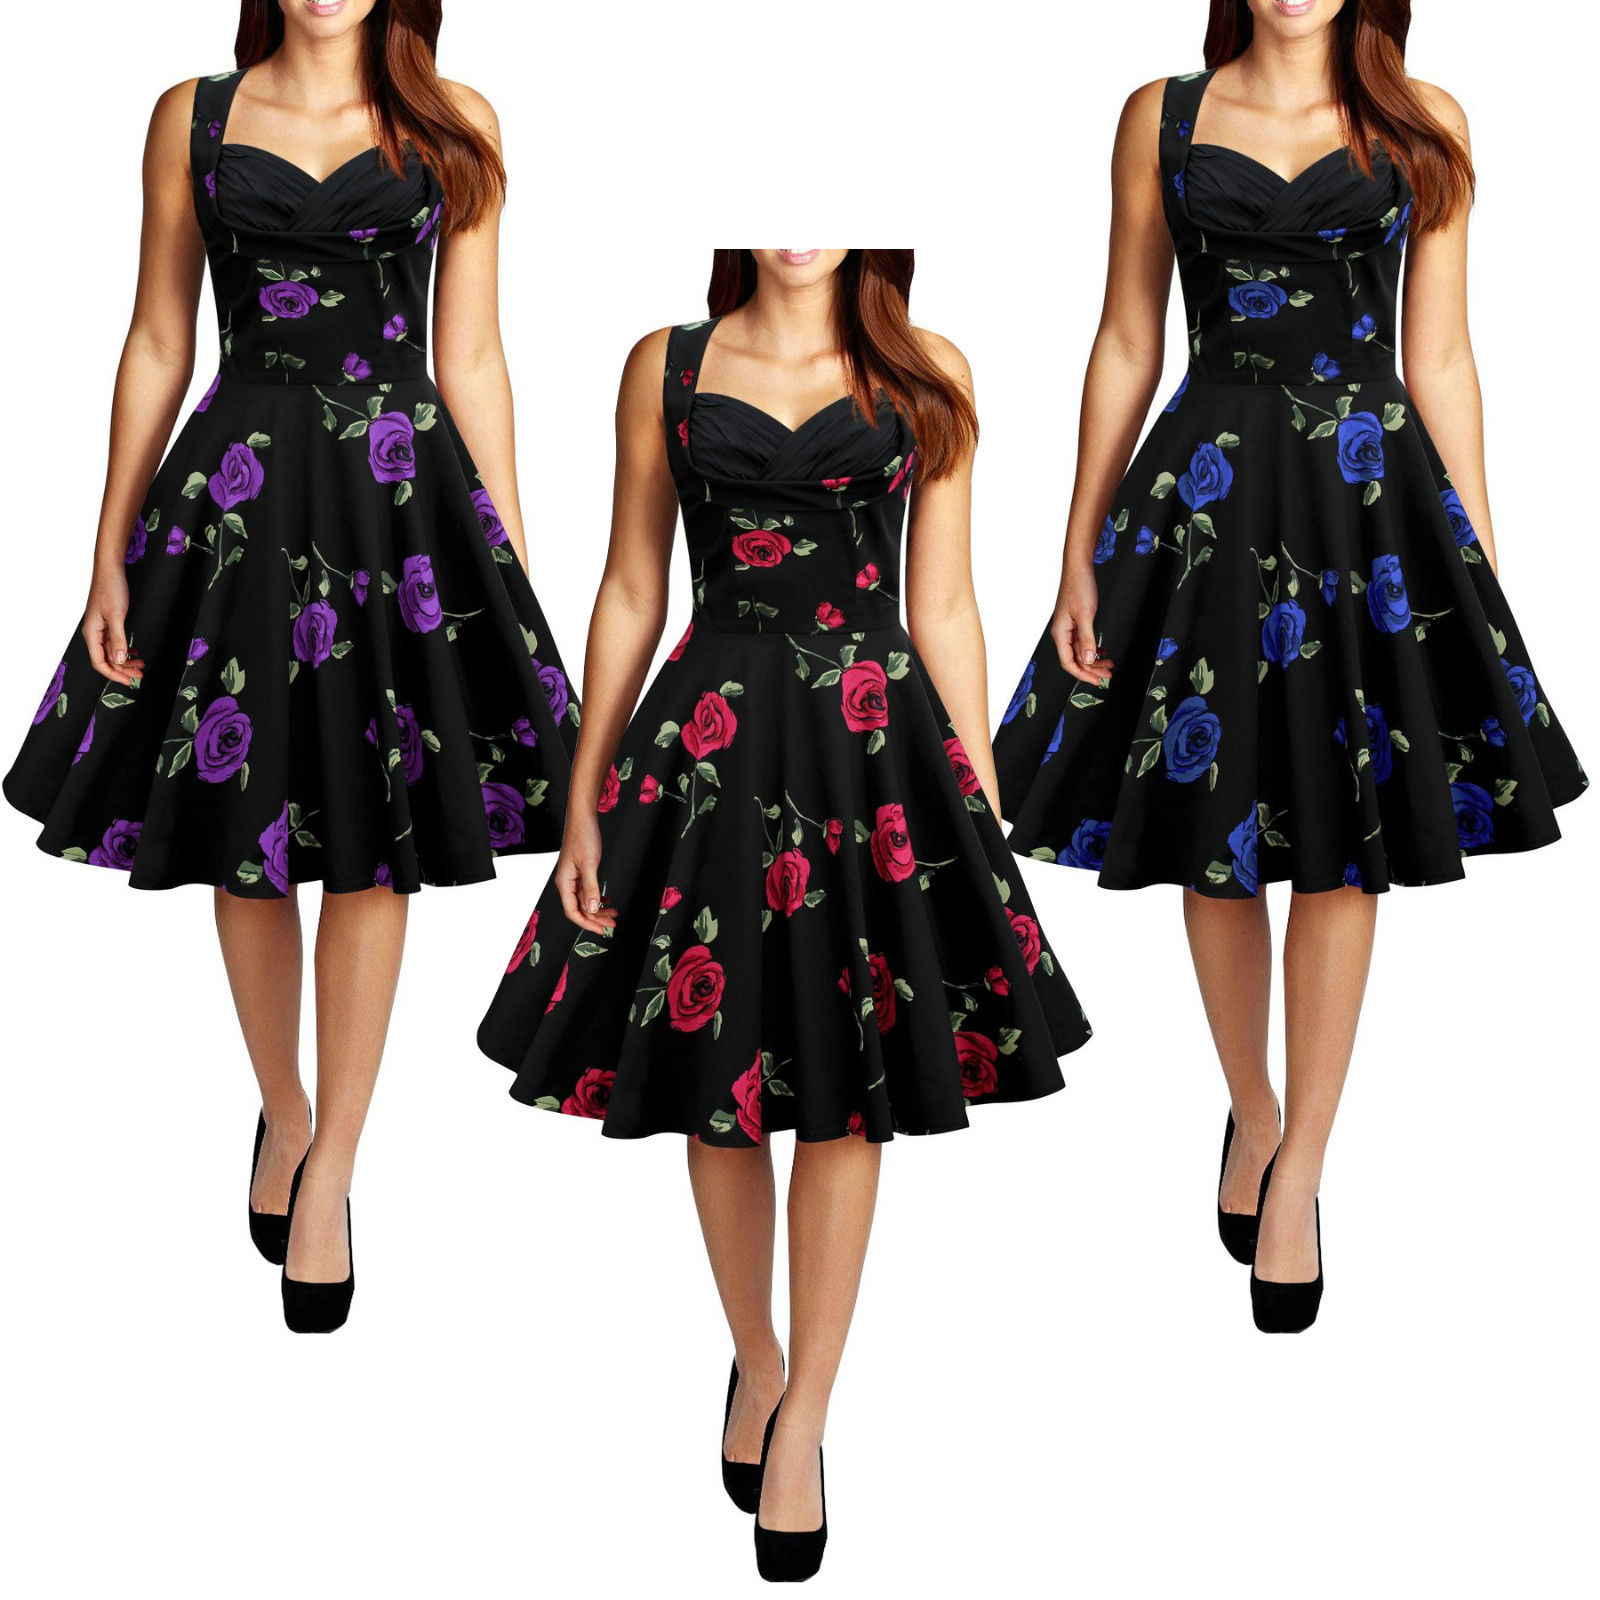 e28544f792214 Ladys Vintage Style 1950's Floral Rockabilly Party Swing Dress New Women  Summer Pinup Ladies Swing Elegant Dresses